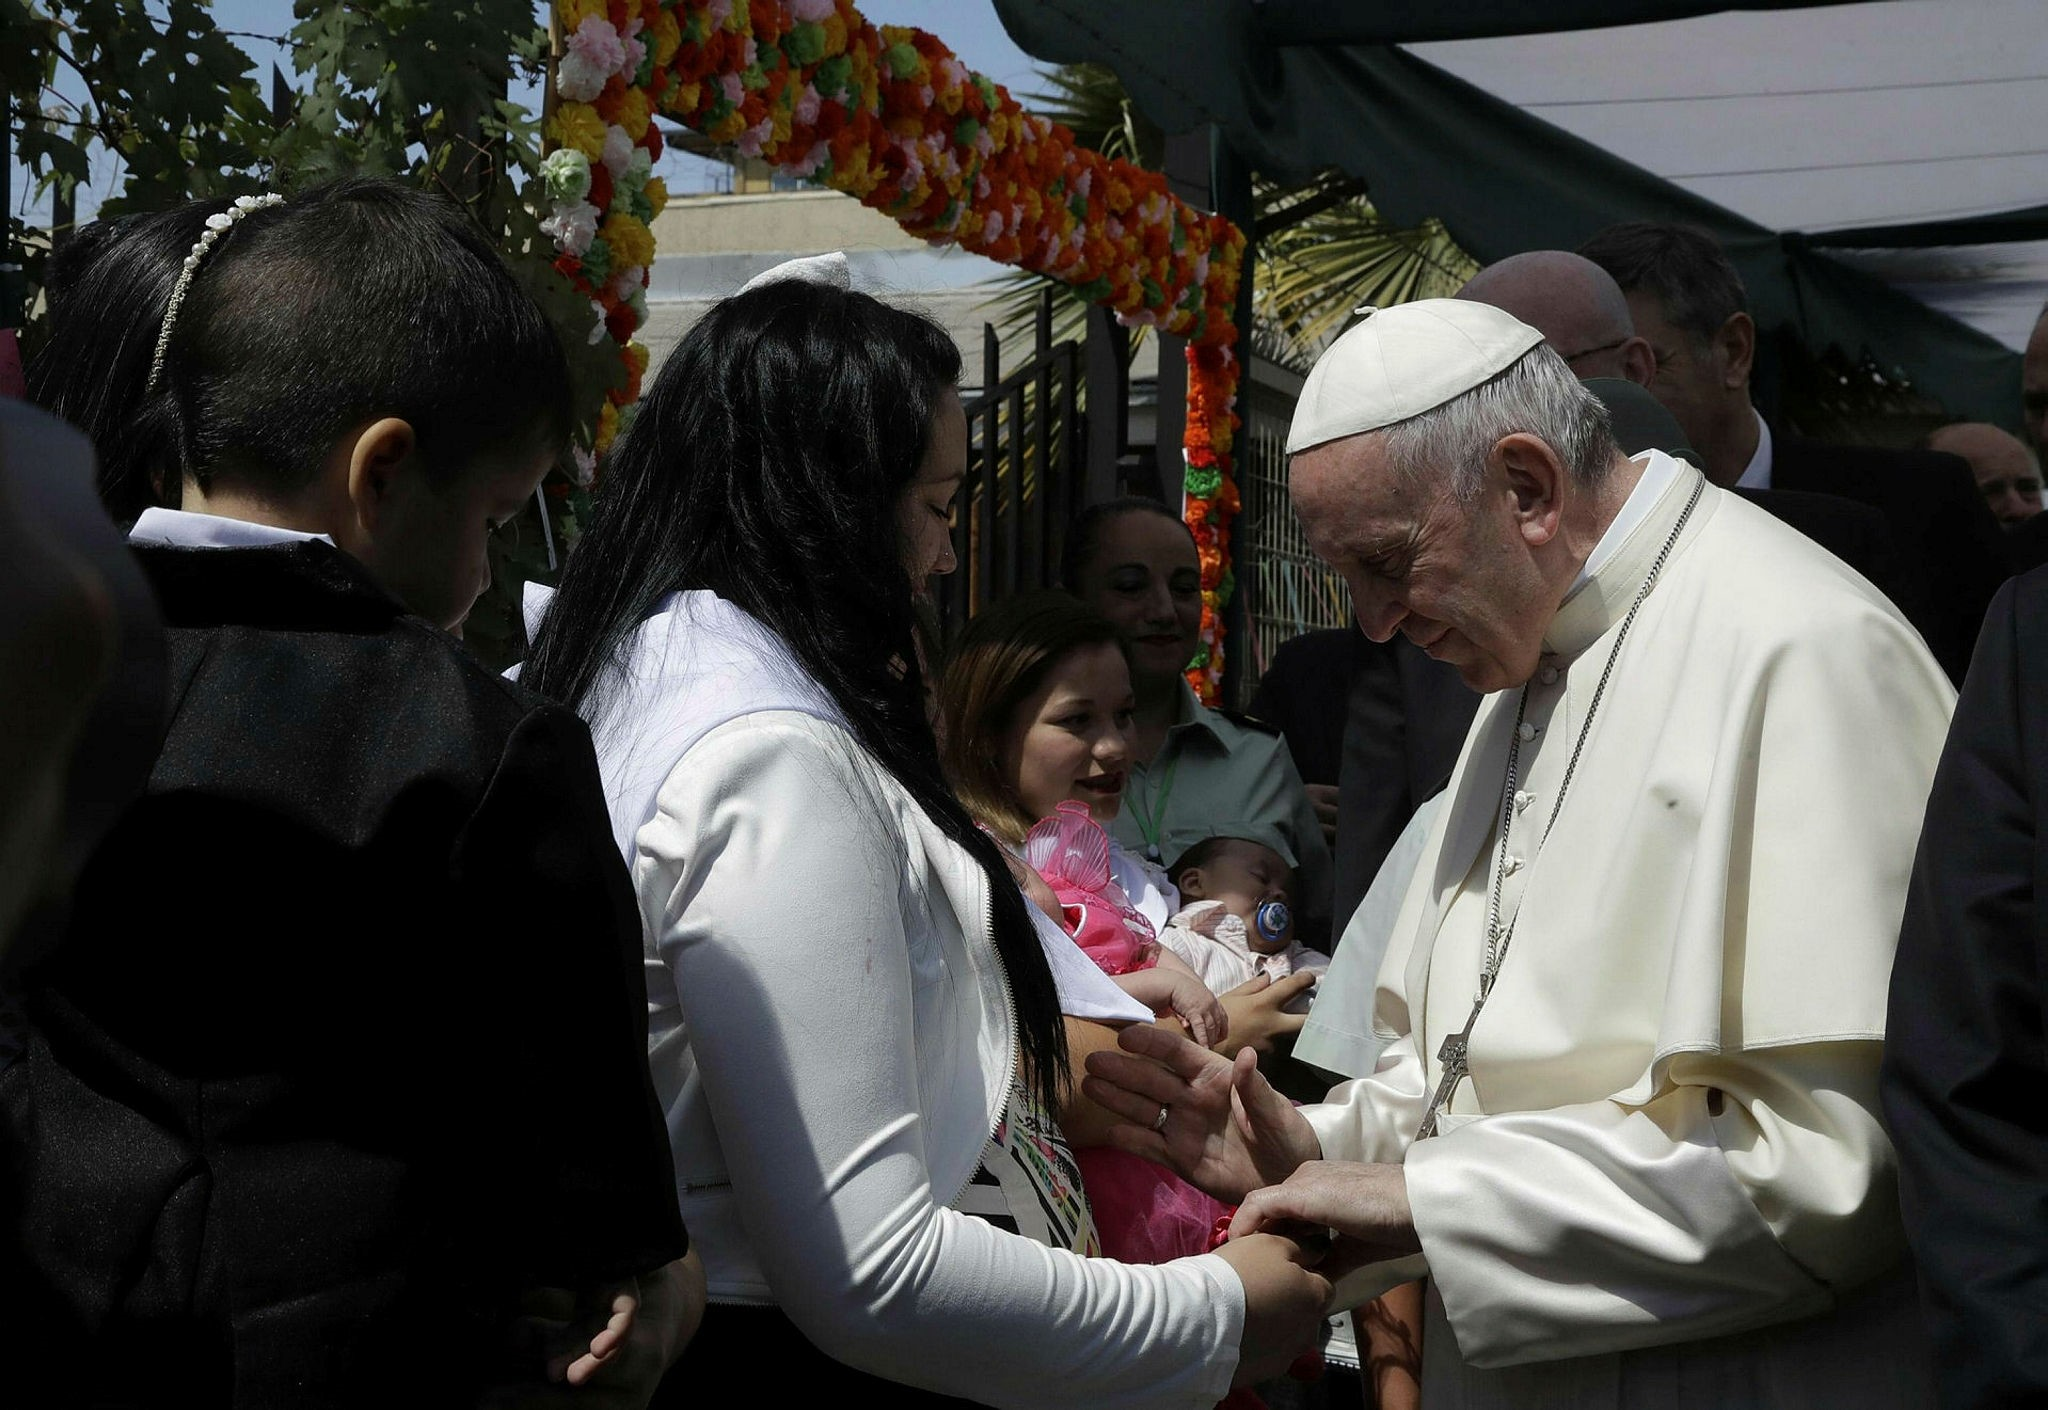 Pope Francis greets inmates at the San Joaquin women's prison in Santiago, 16 January 2018. Pope Francis visits in Chile and Peru runs from 15 January to 22 January 2018. (EPA Photo)